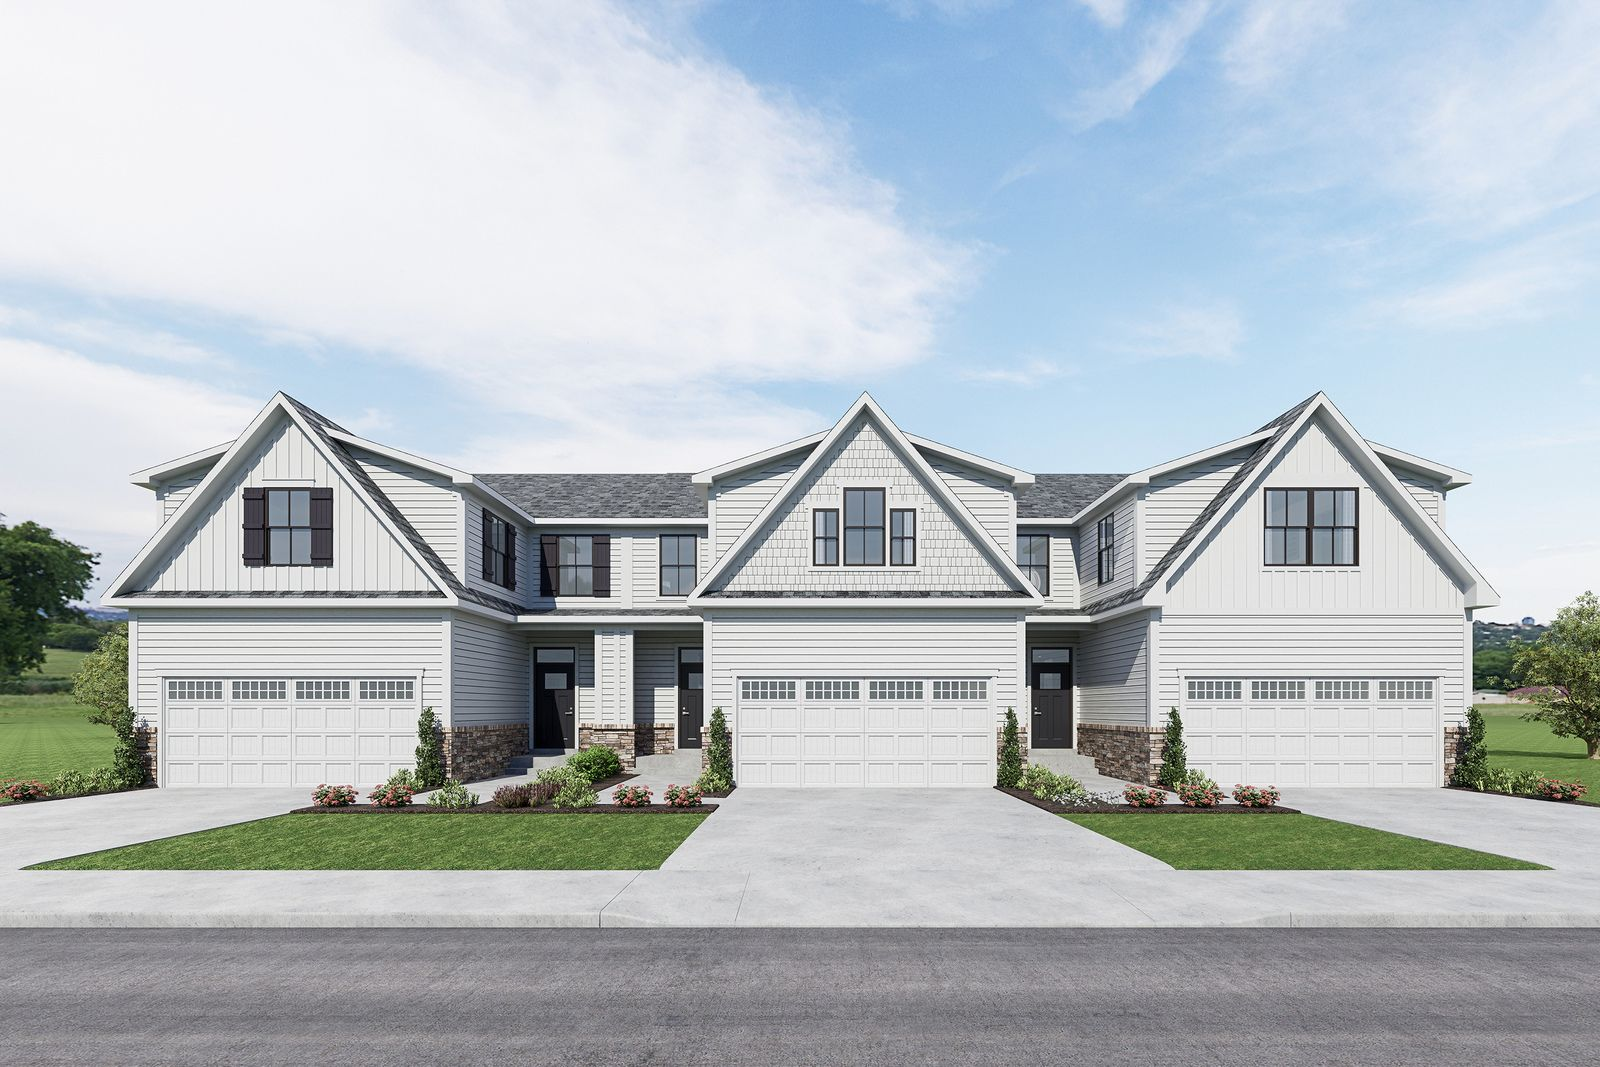 SMALL ENCLAVE OF 48 MODERN TOWNHOMES FROM MID $300's:Own a new modern farmhouse style townhome with 1st-floor owner suite and homesites that back to trees or open space—Join the VIP List for exclusive info & best pricing!